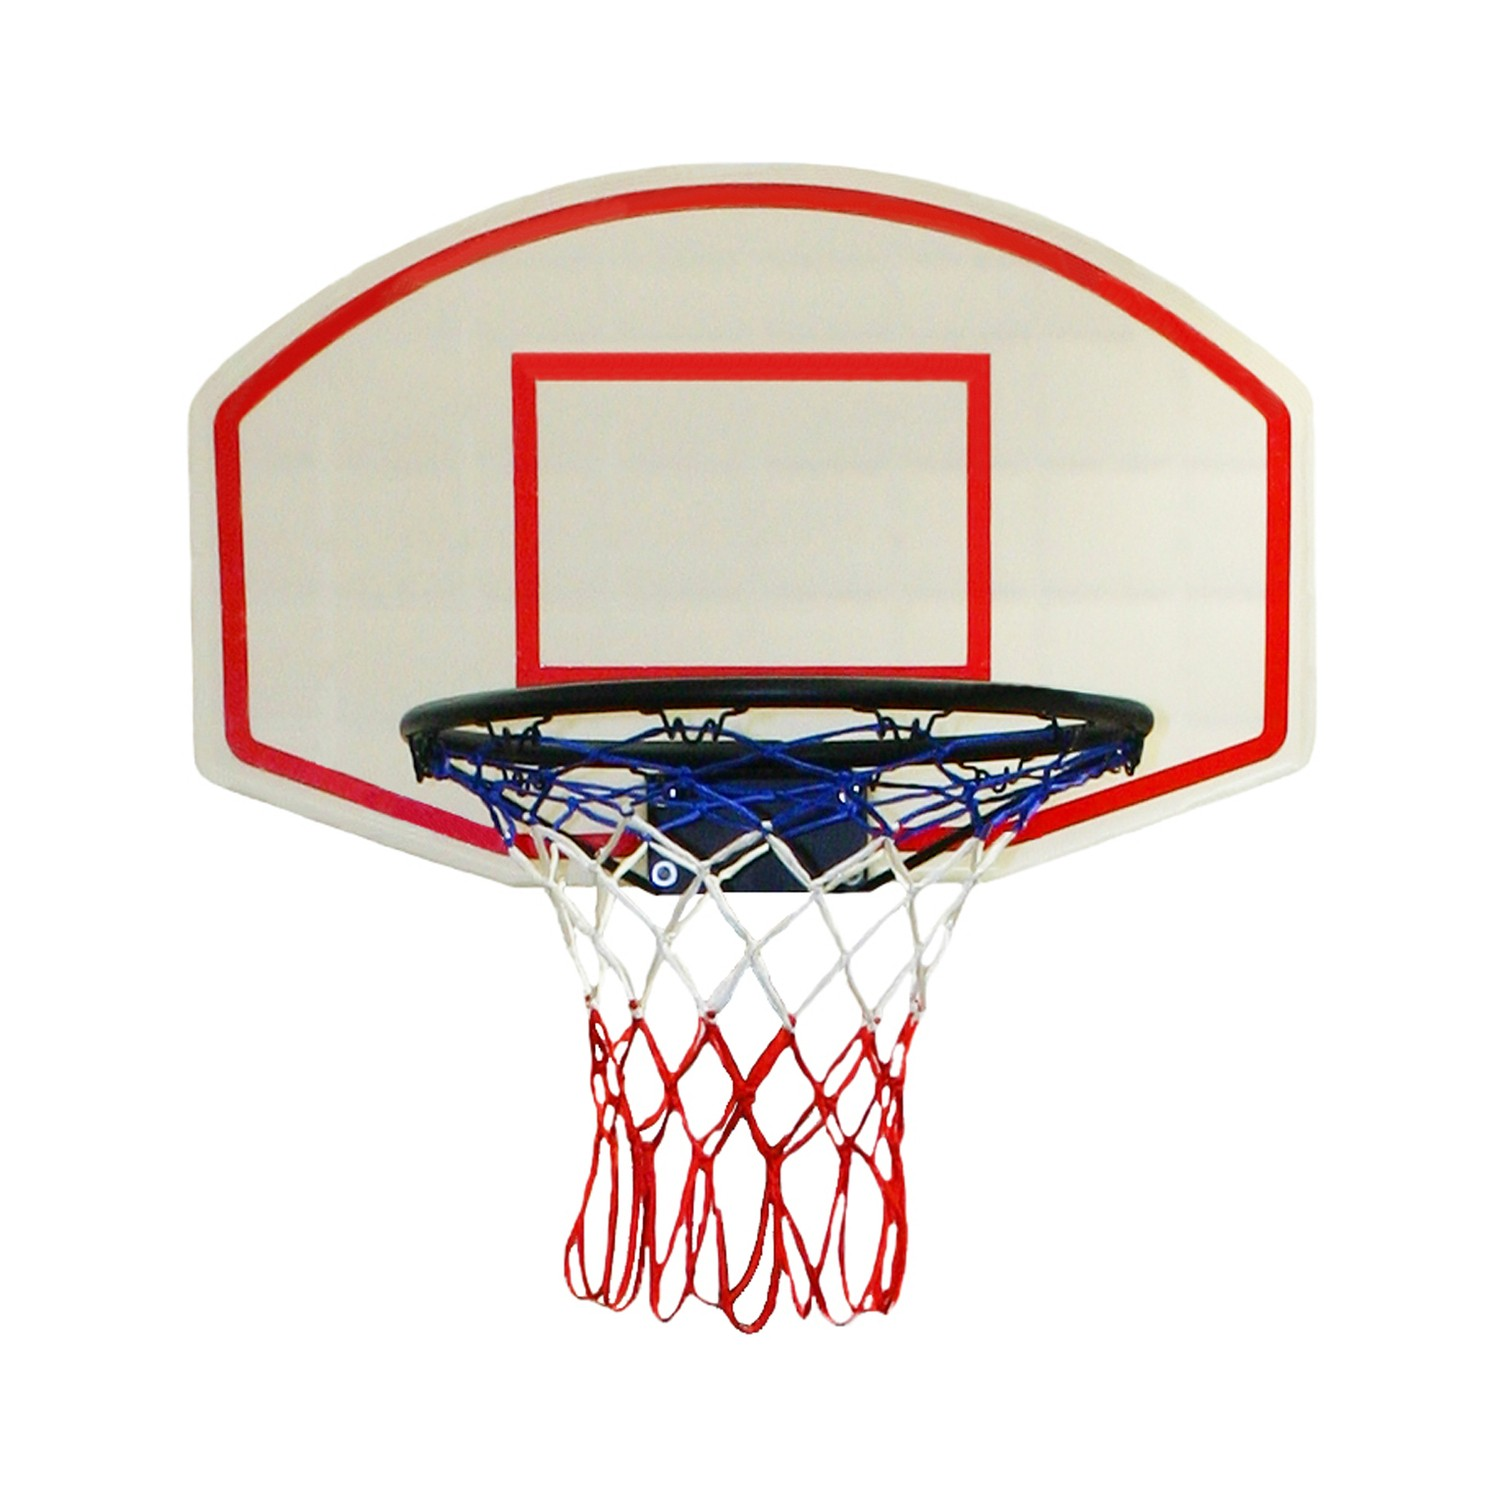 basketballring 48 cm mit board 90 x 60 x 1 5 cm von. Black Bedroom Furniture Sets. Home Design Ideas